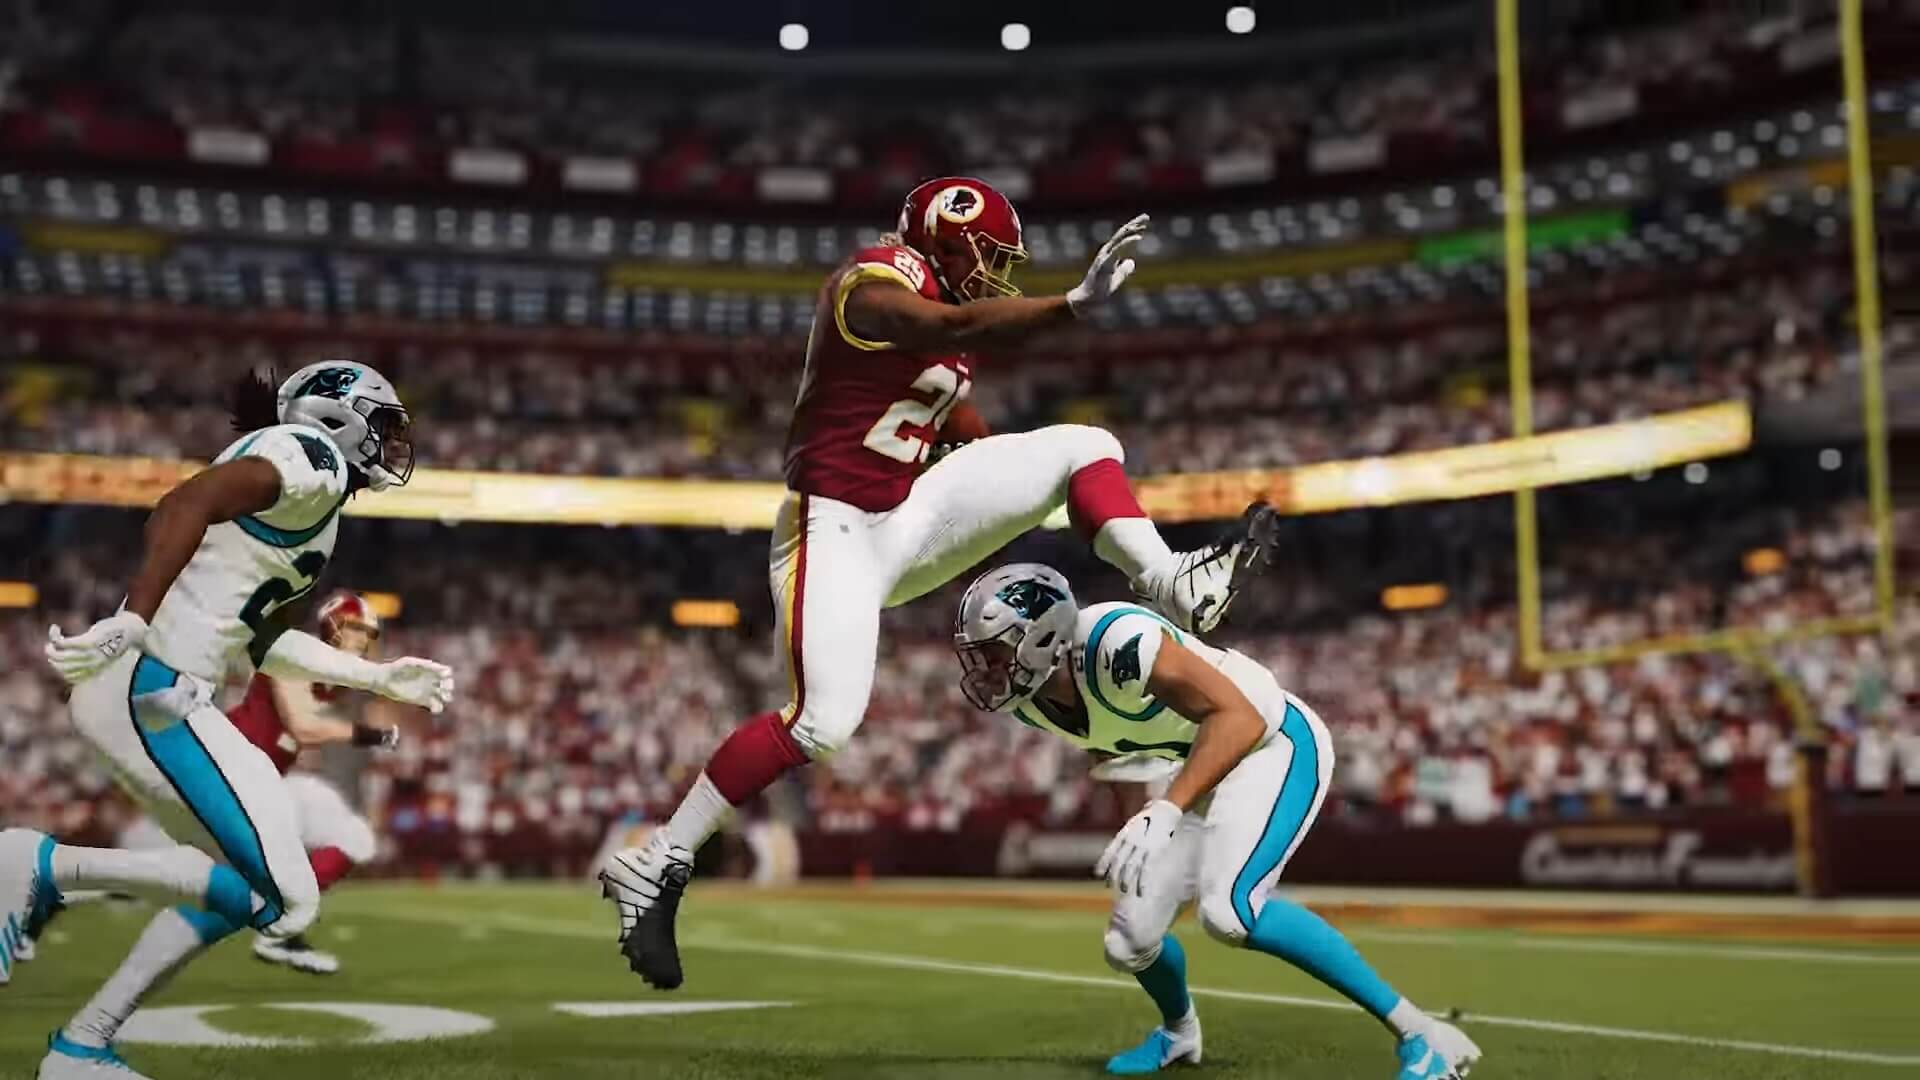 The Yard, A Backyard Football-Inspired Mode, Coming To Madden NFL 21